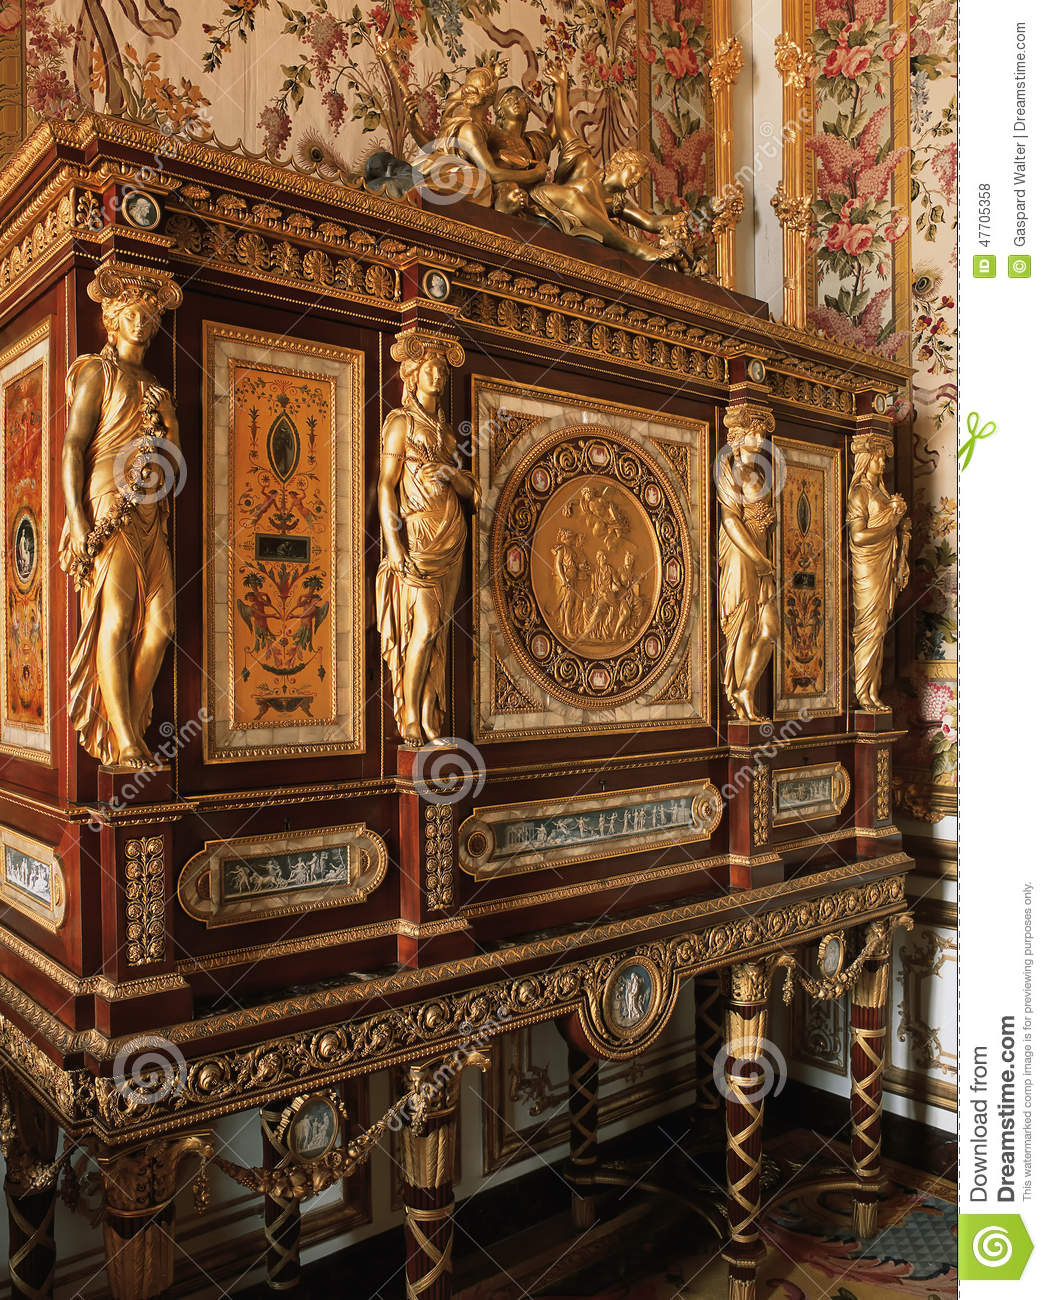 Muebles Versalles Wooden Furniture With Ornaments At Versailles Palace